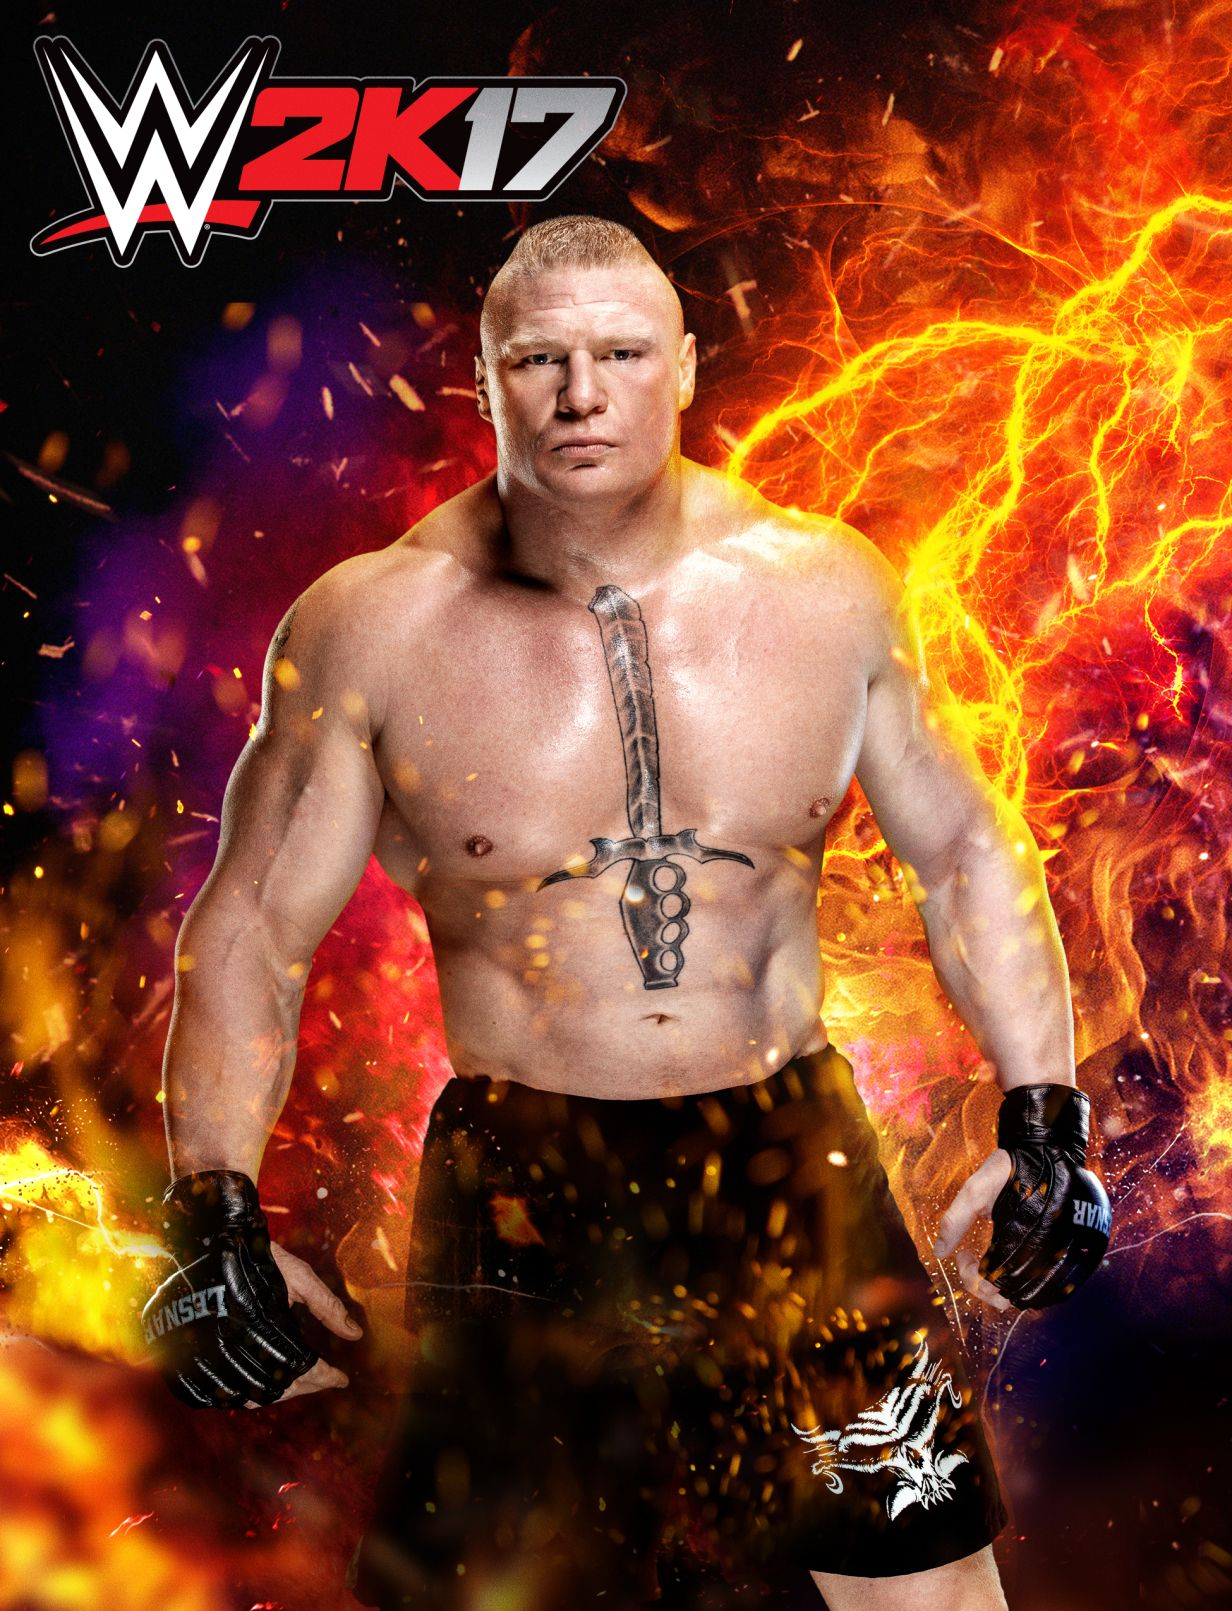 Wwe Games And Brock Lesnar Invite You To Suplex City In Wwe 2k17 Wwe Brock Wwe Game Brock Lesnar